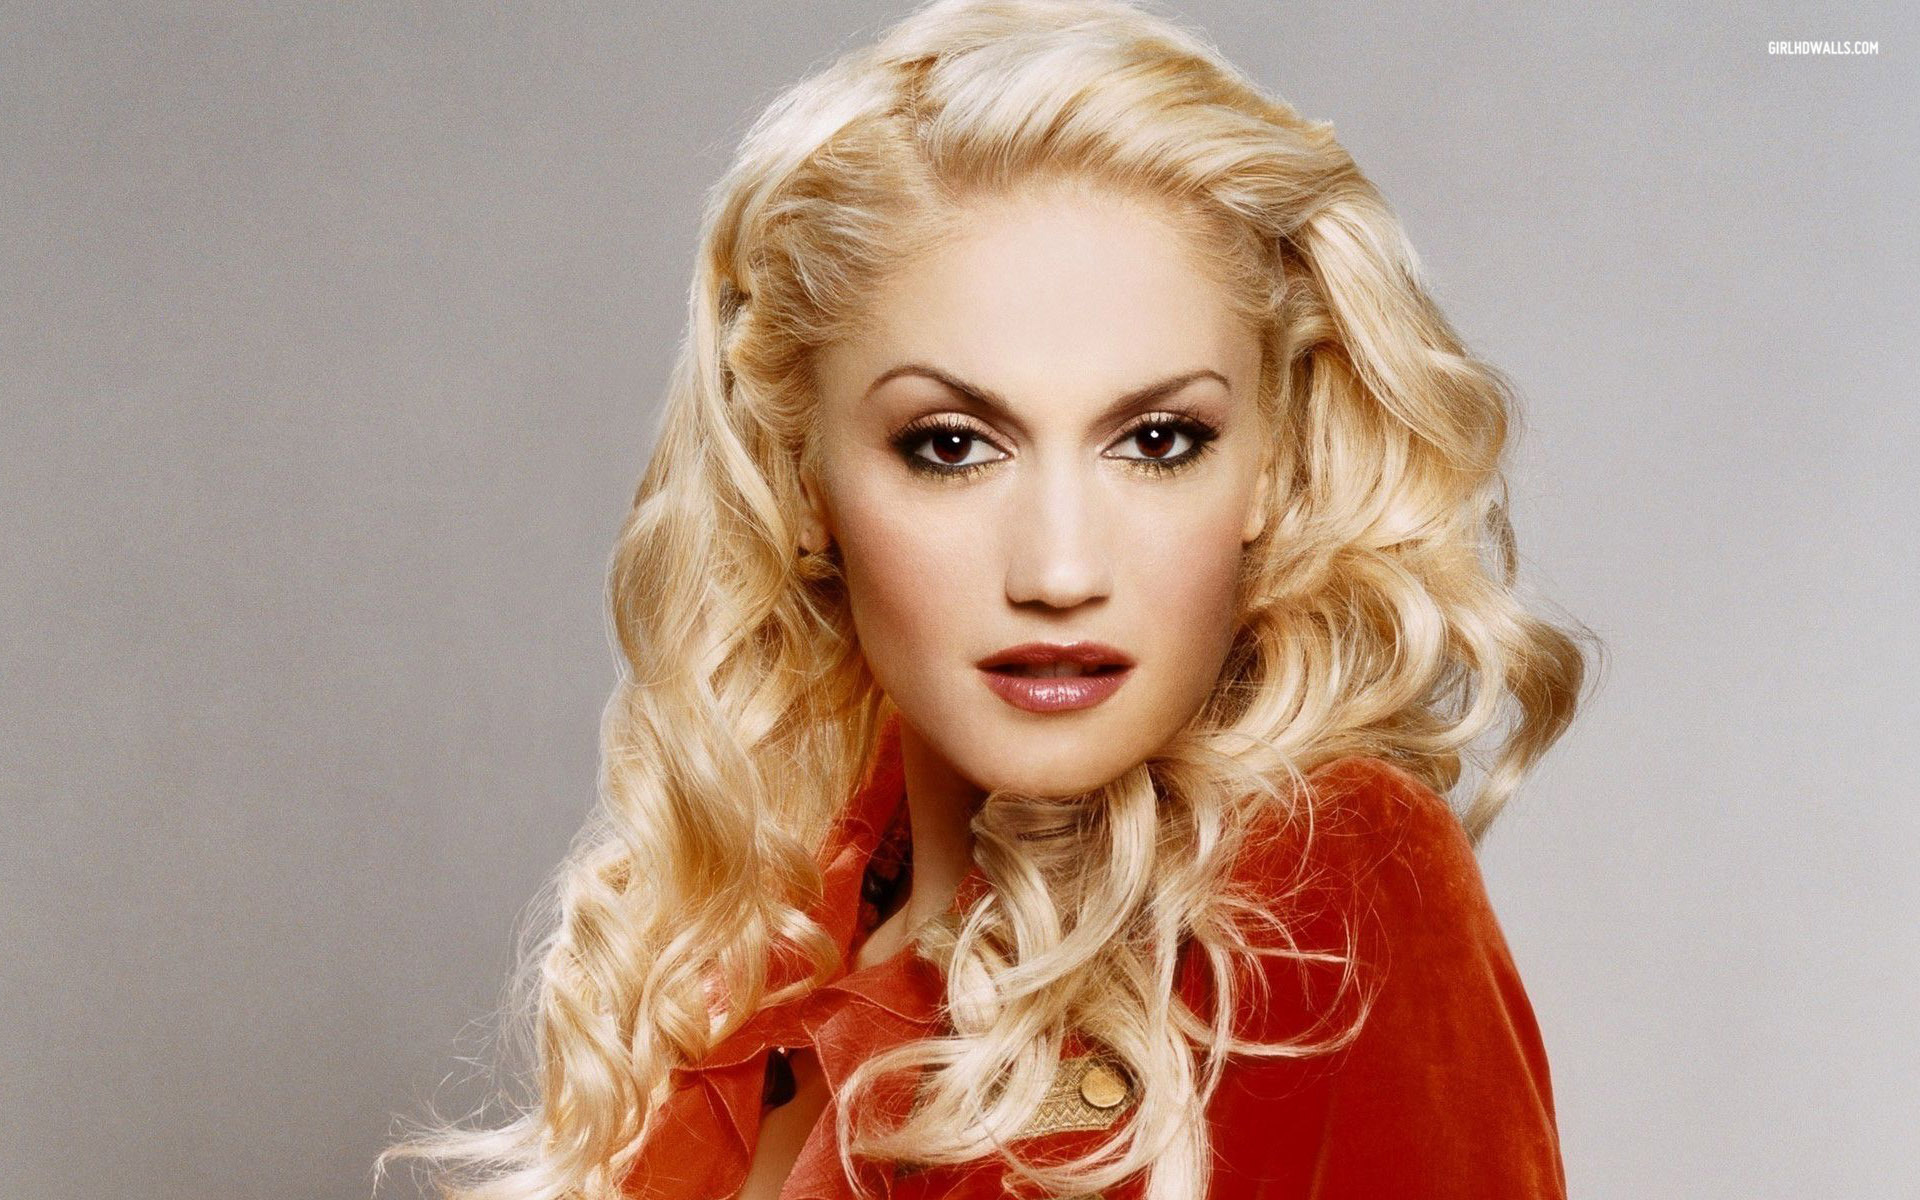 Gwen Stefani Wallpapers High Resolution and Quality Download гвен стефани